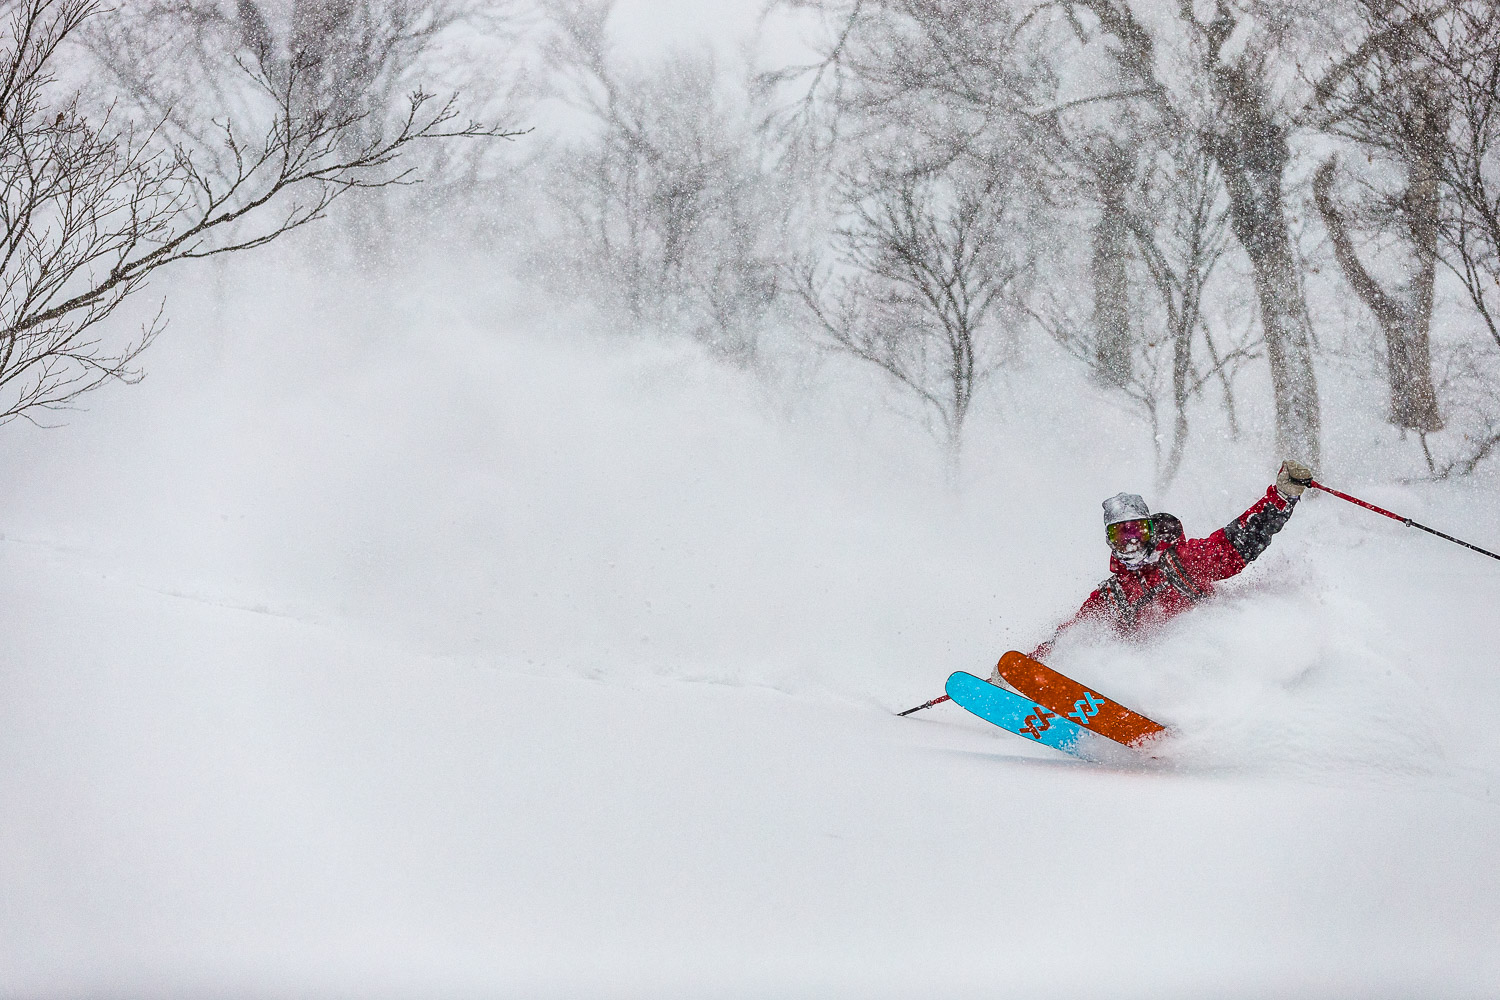 Tanner Rainville taking advantage of the snow with Shimamaki Snowcats.